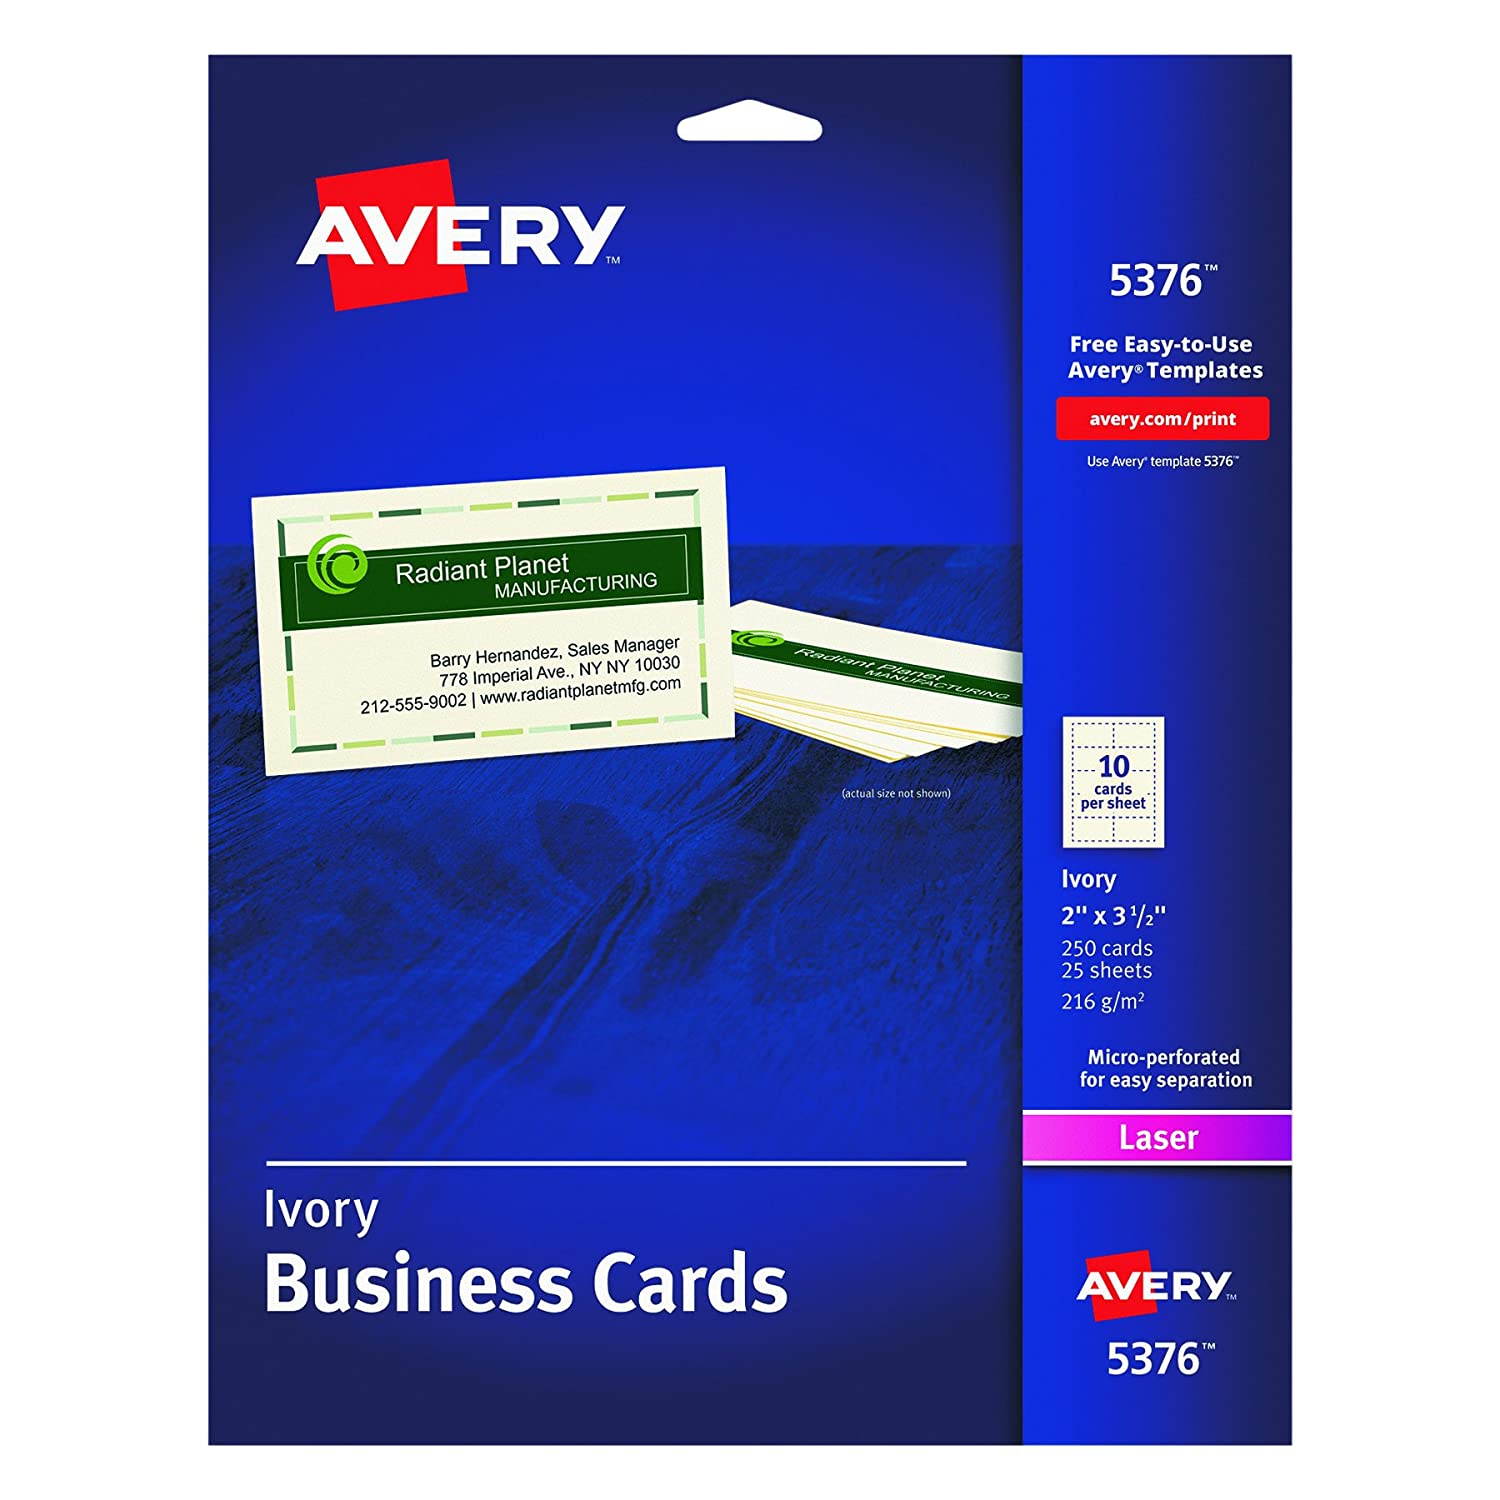 Amazon.com : Avery Business Cards for Laser Printers 5376, Ivory ...